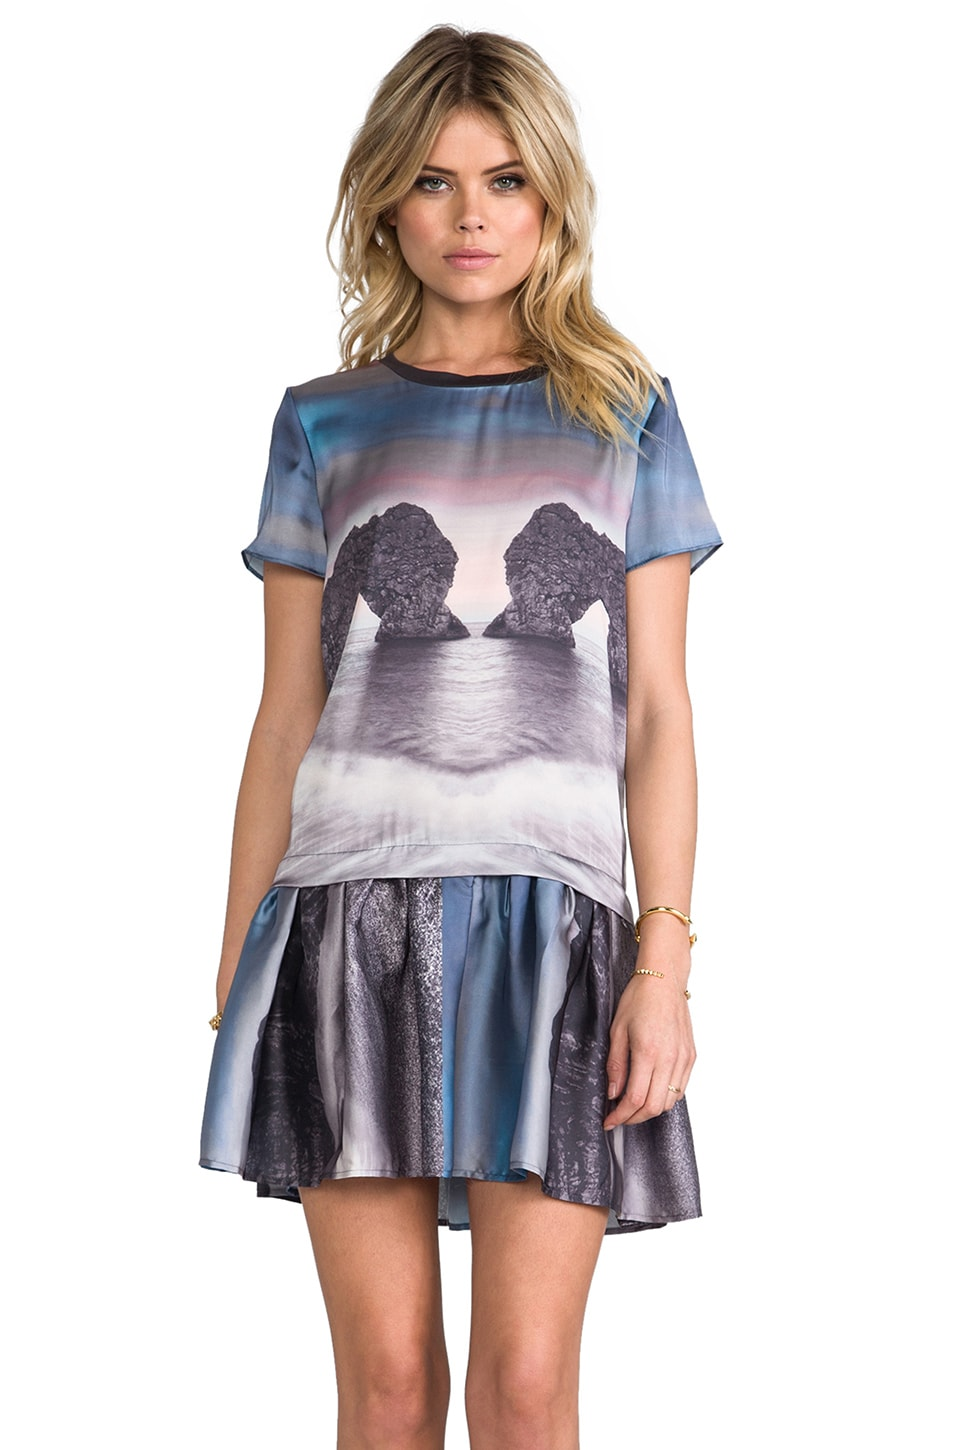 Funktional T-Shirt Dress in Horizon